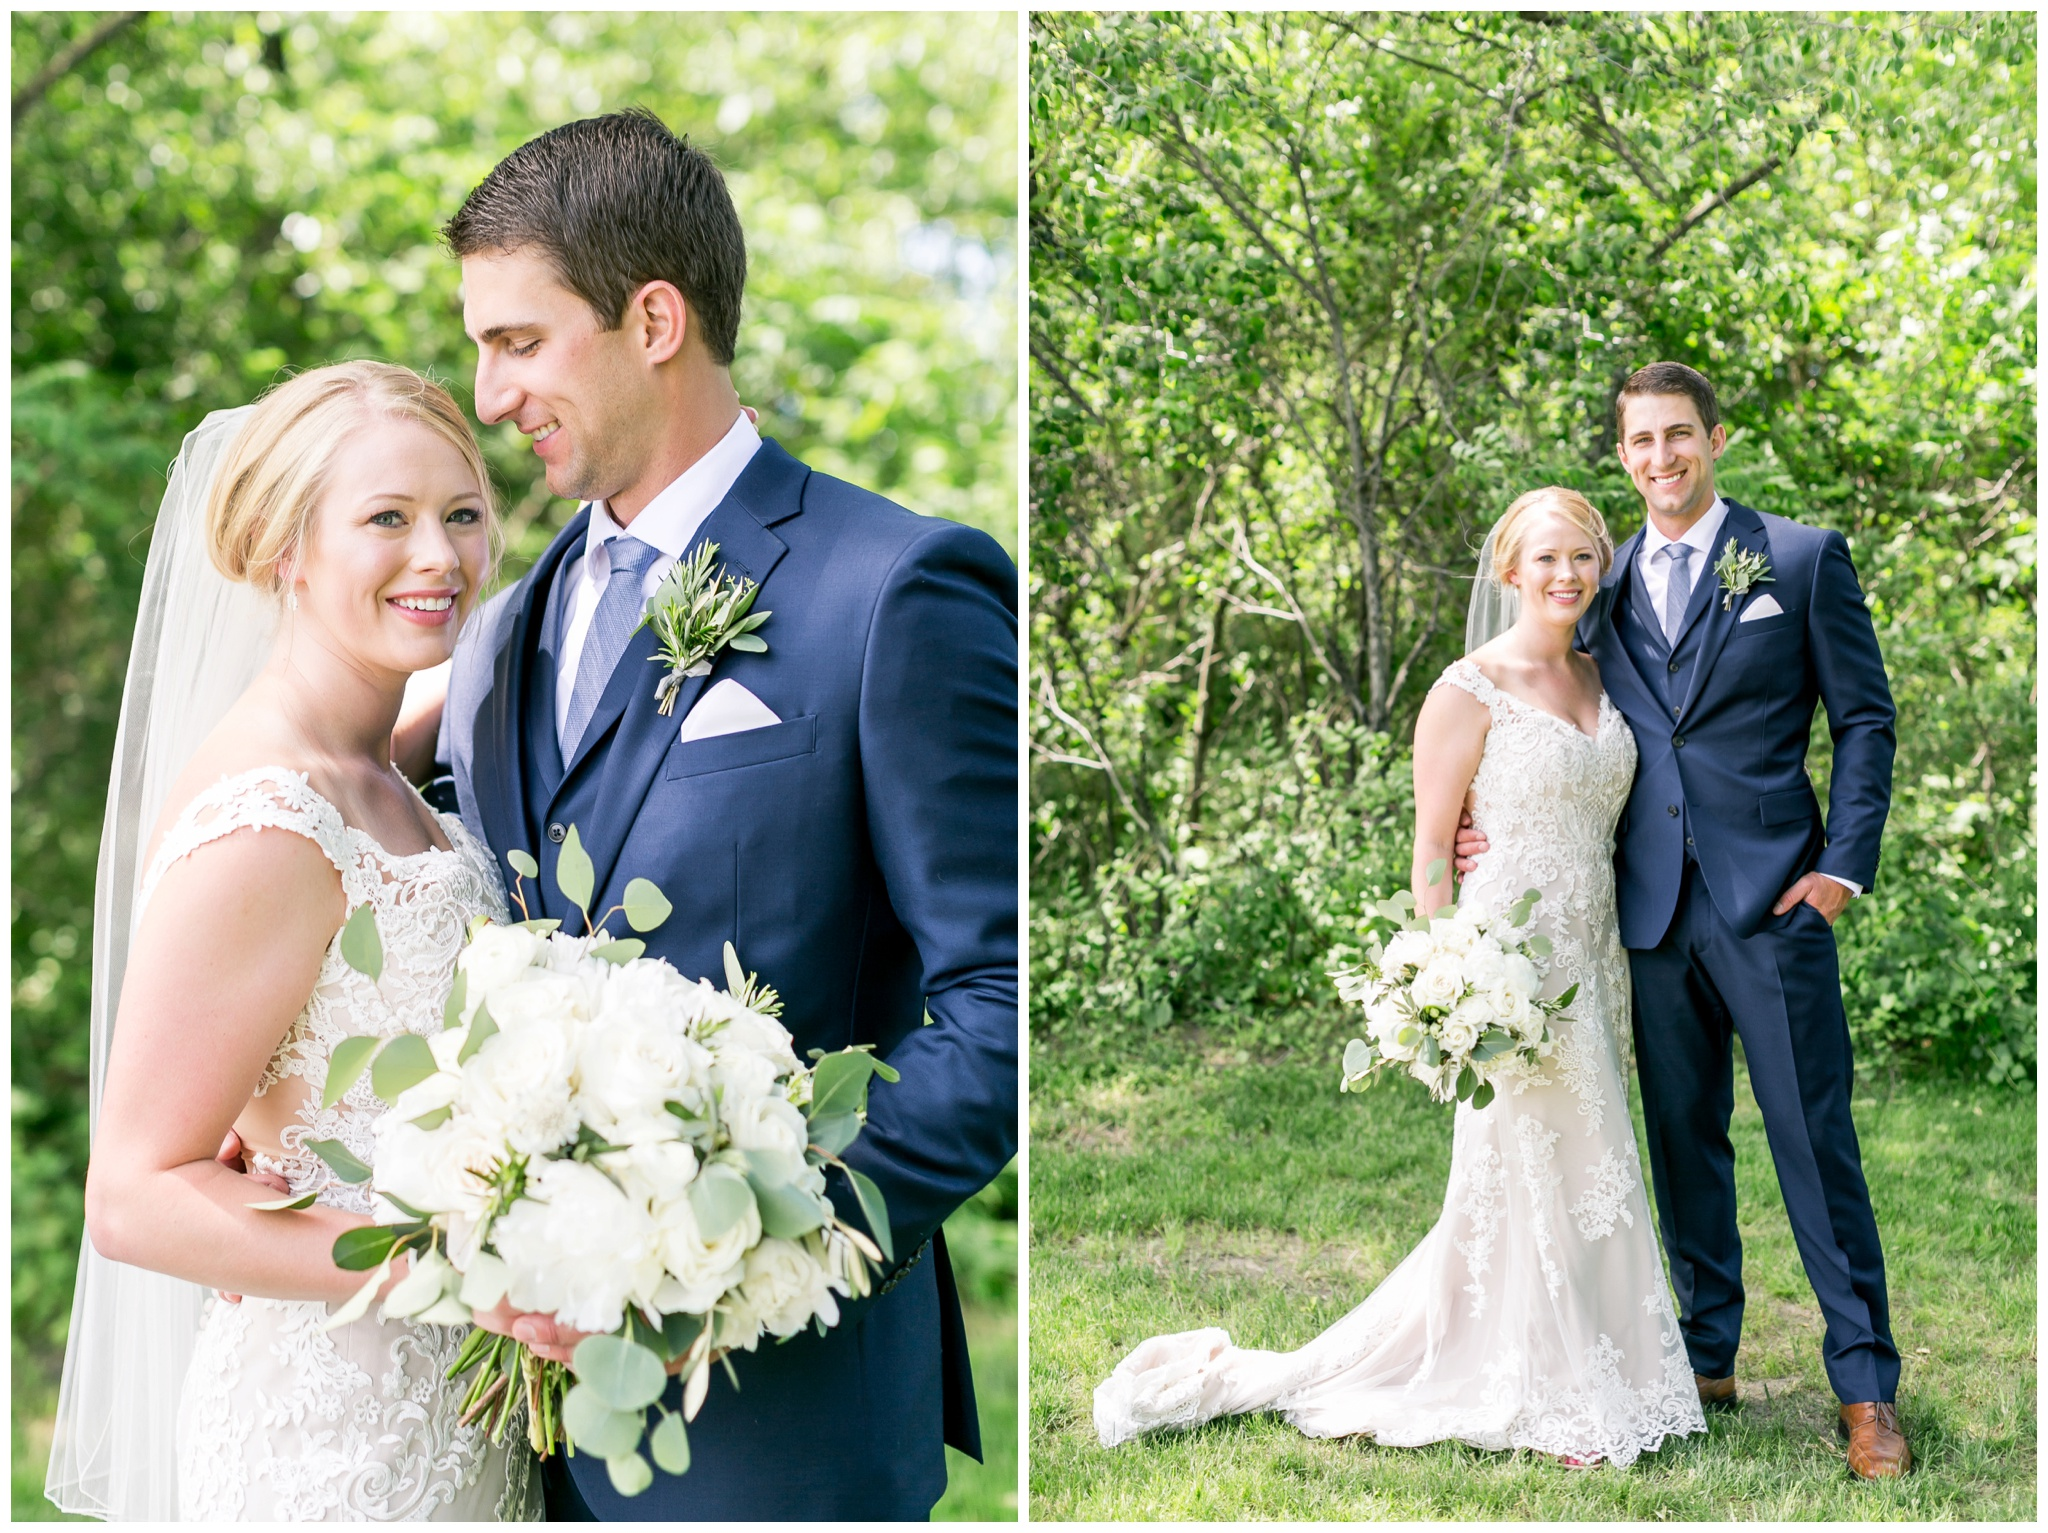 private_estate_wedding_stoughton_wisconsin_wedding_caynay_photo_3840.jpg